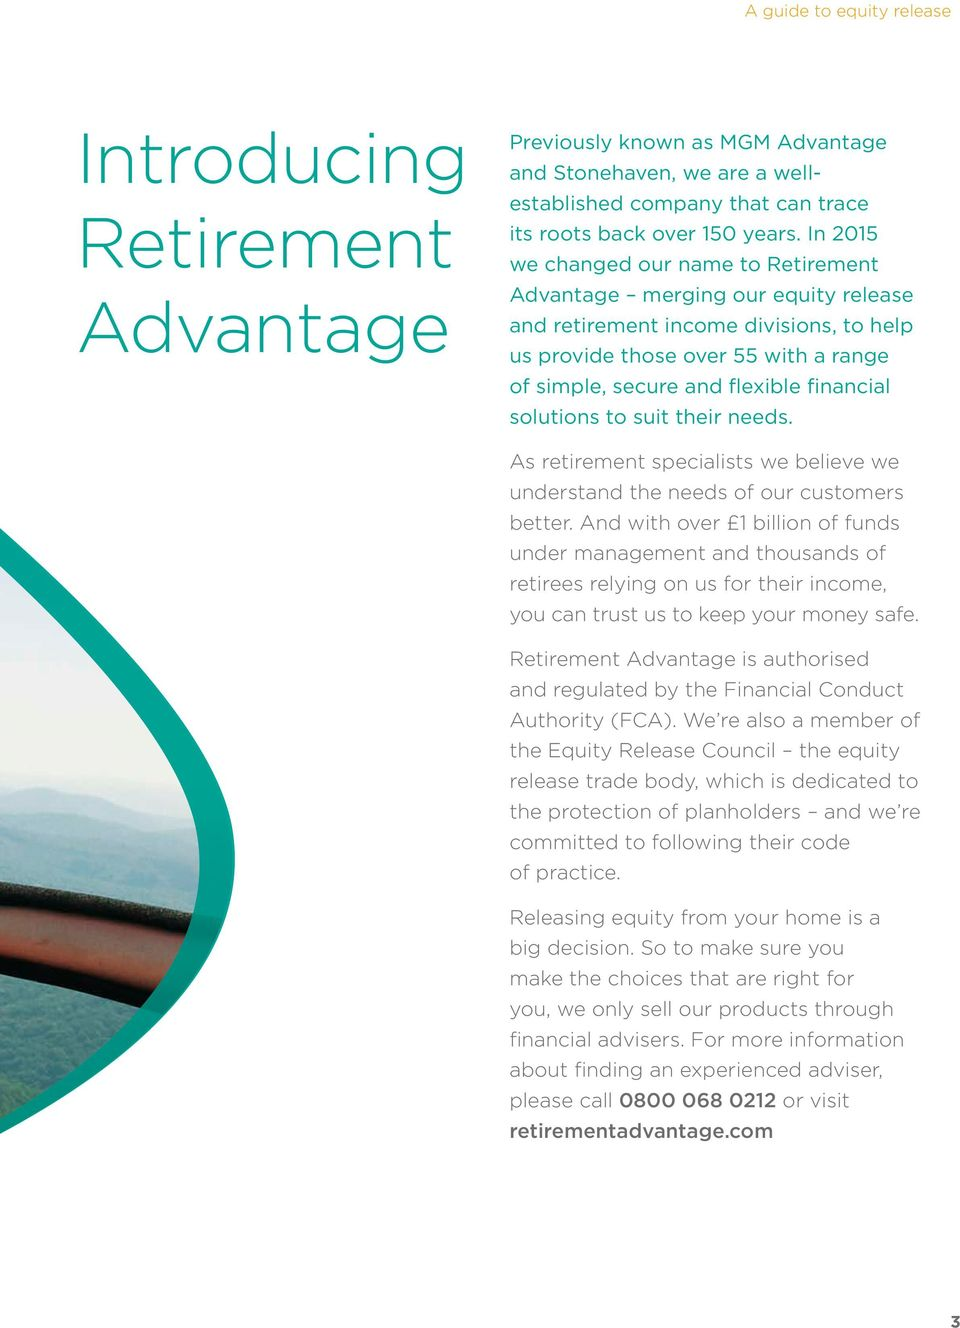 solutions to suit their needs. As retirement specialists we believe we understand the needs of our customers better.